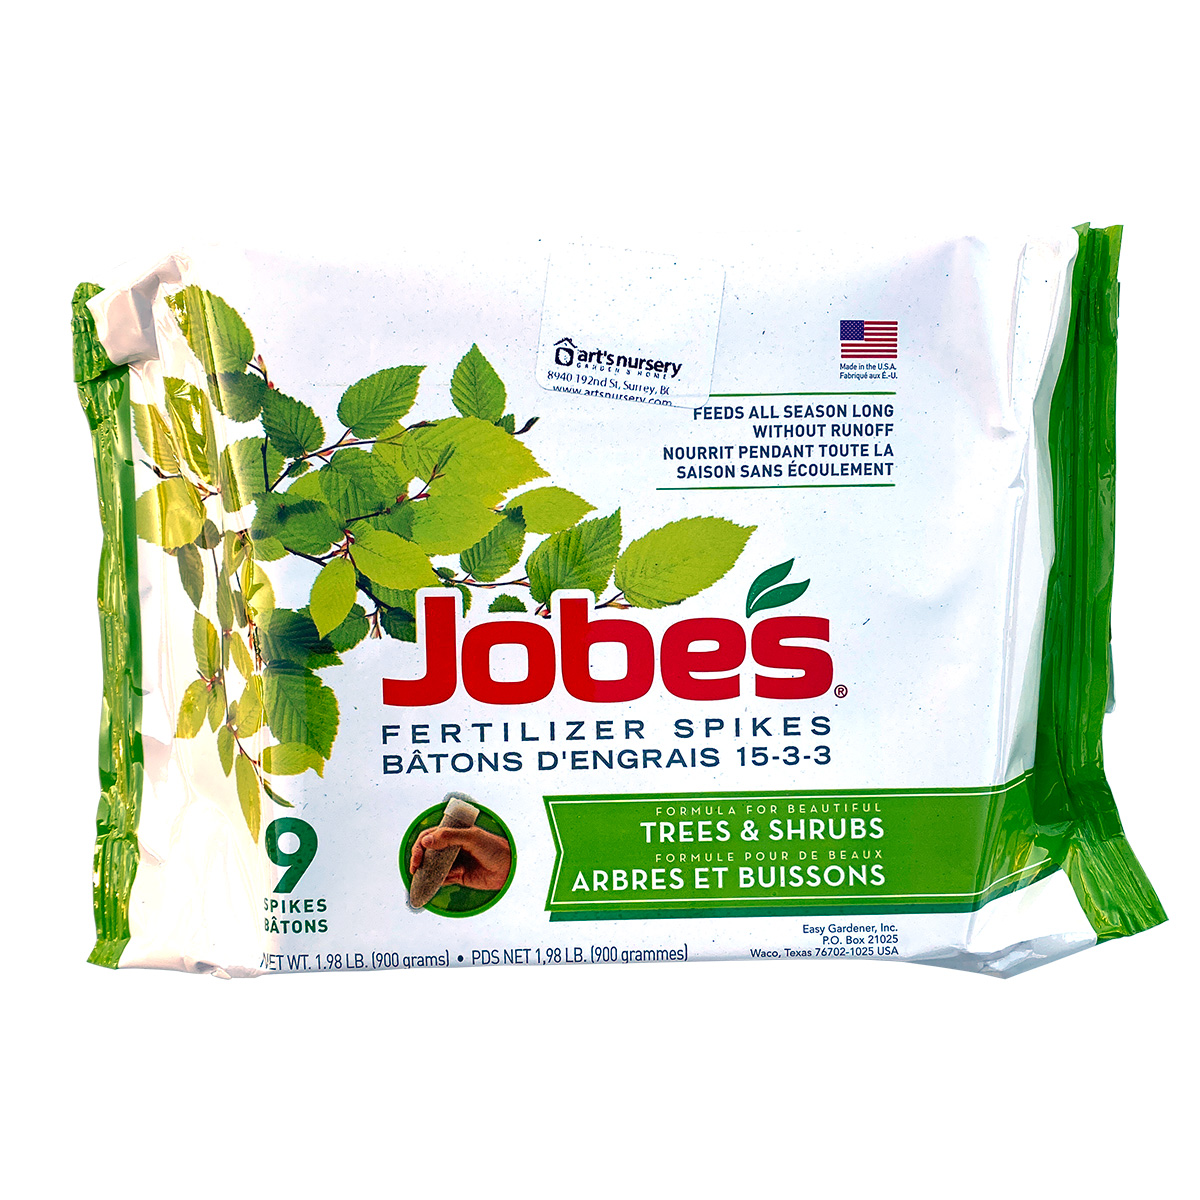 Jobes Tree and Shrub Fertilizer Spikes